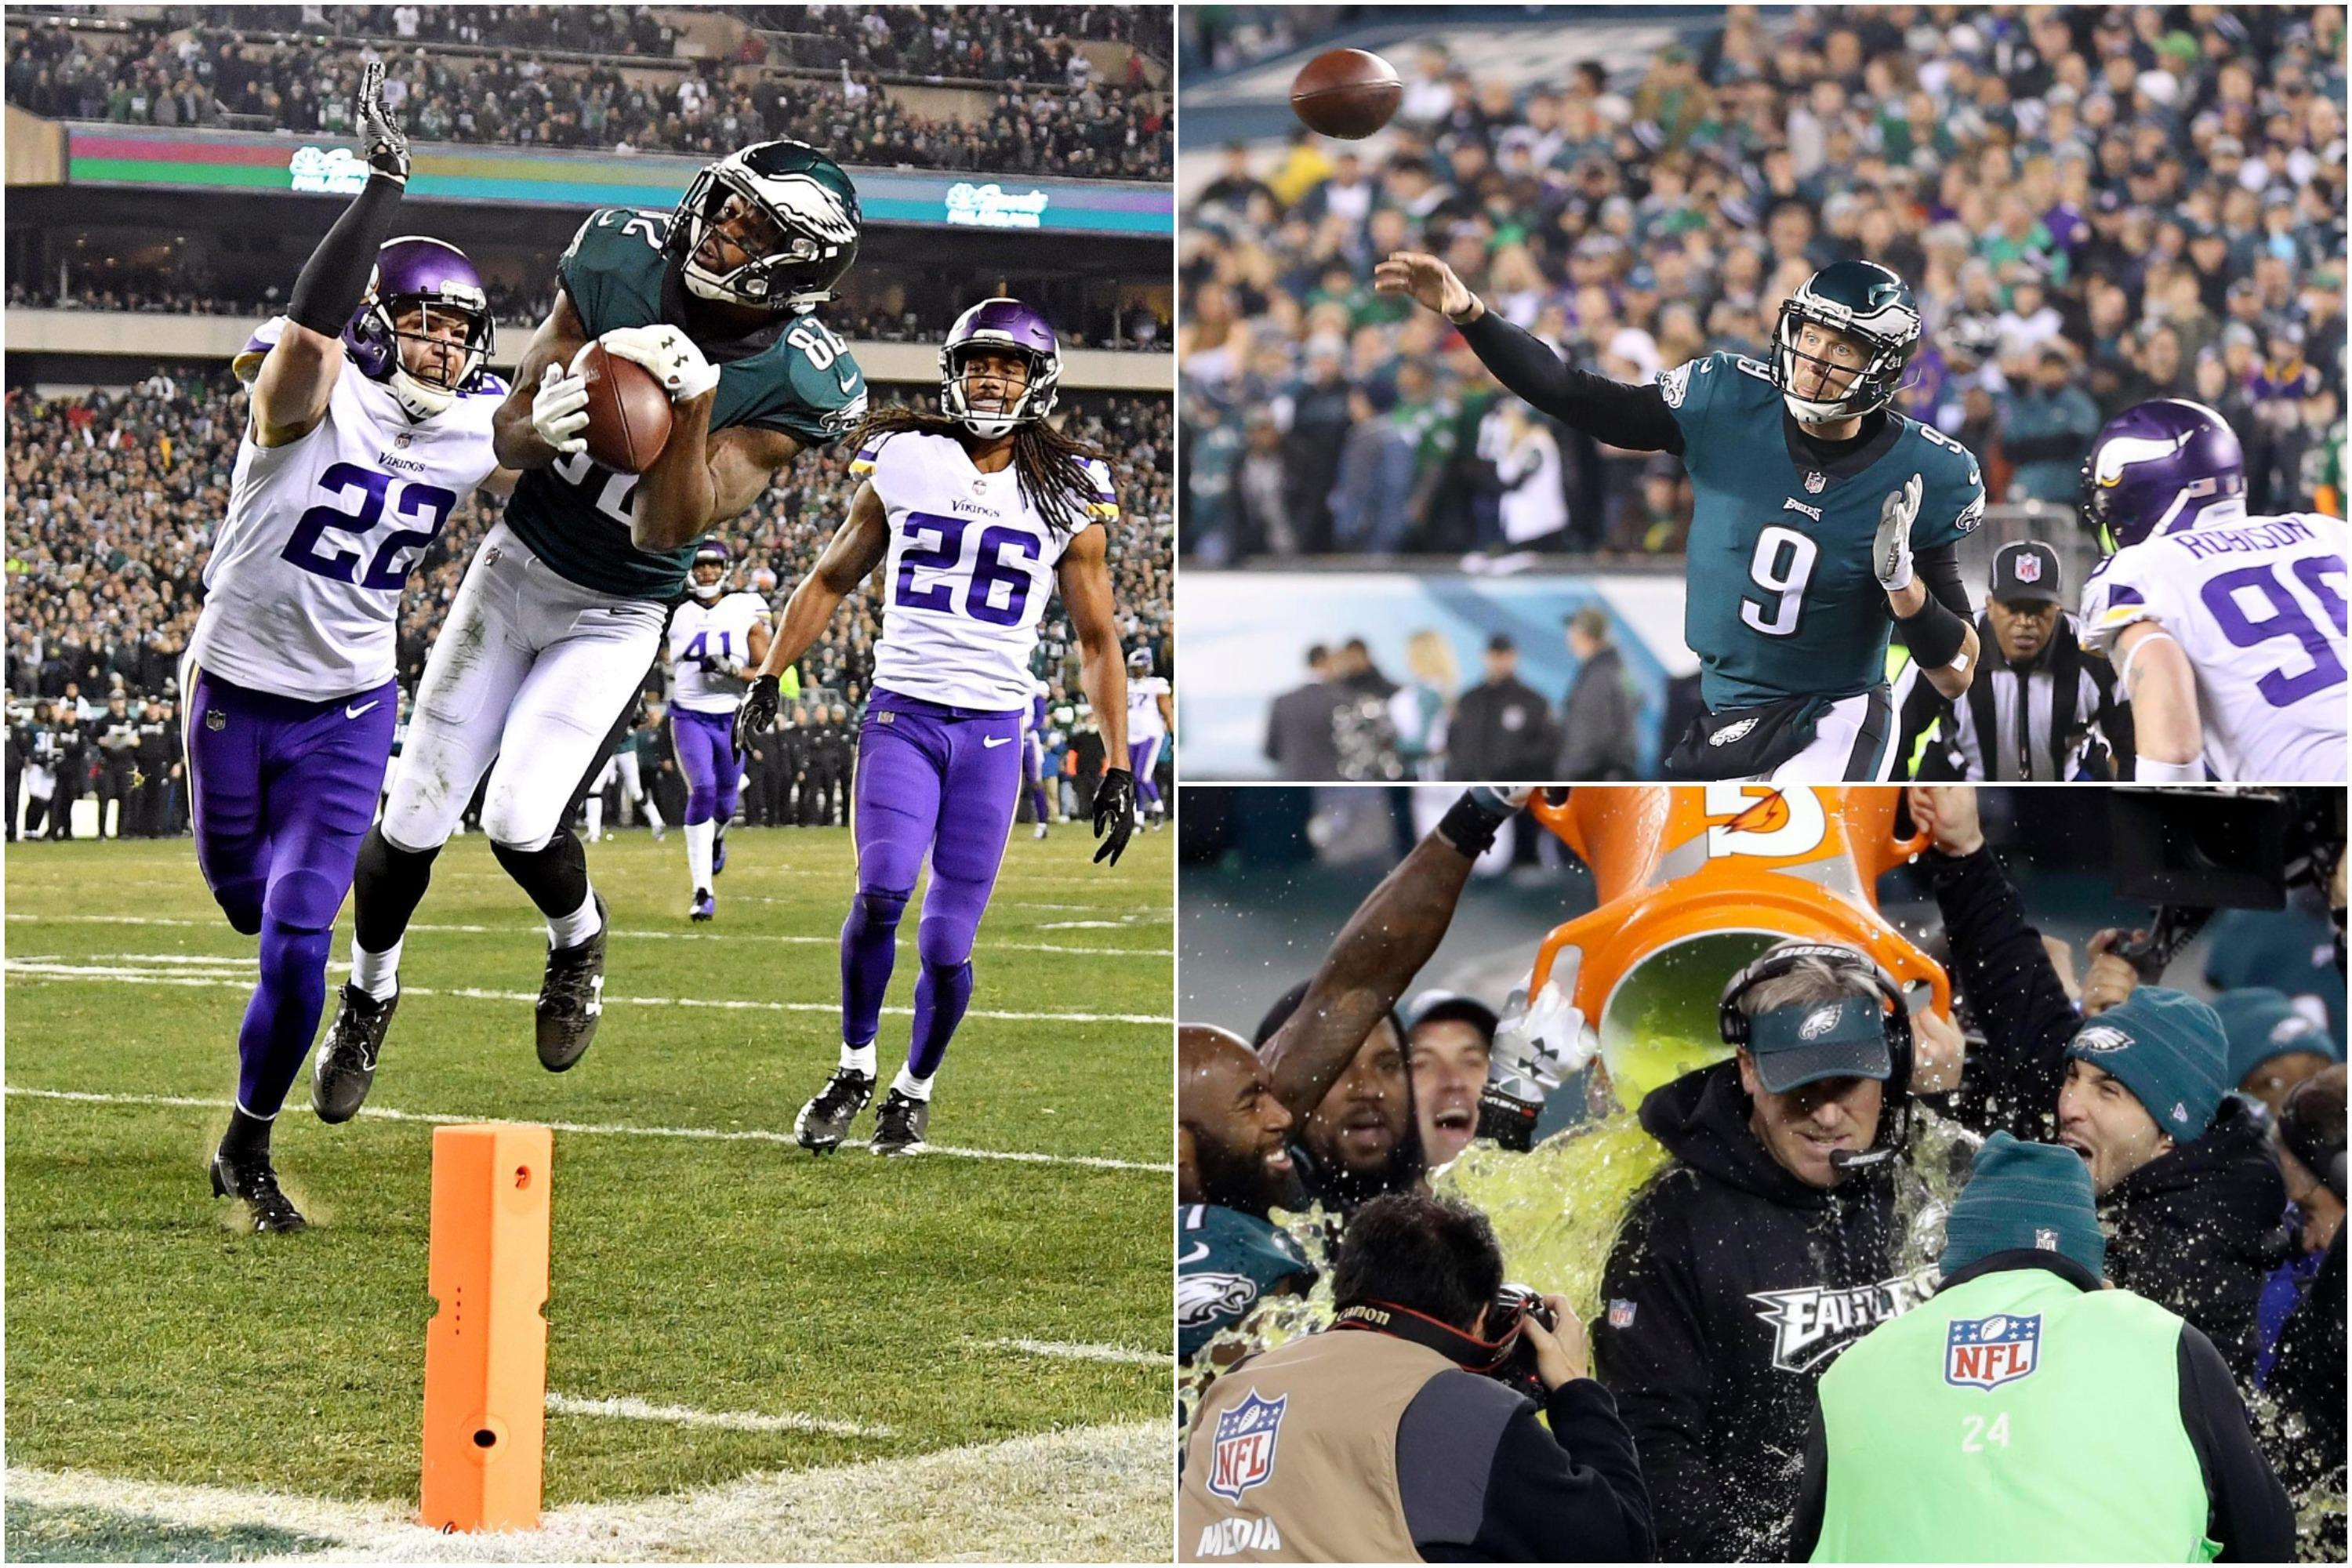 Minnesota Vikings 7 Philadelphia Eagles 38: Nick Foles masterclass sends Philly to Super Bowl showdown with New England Patriots